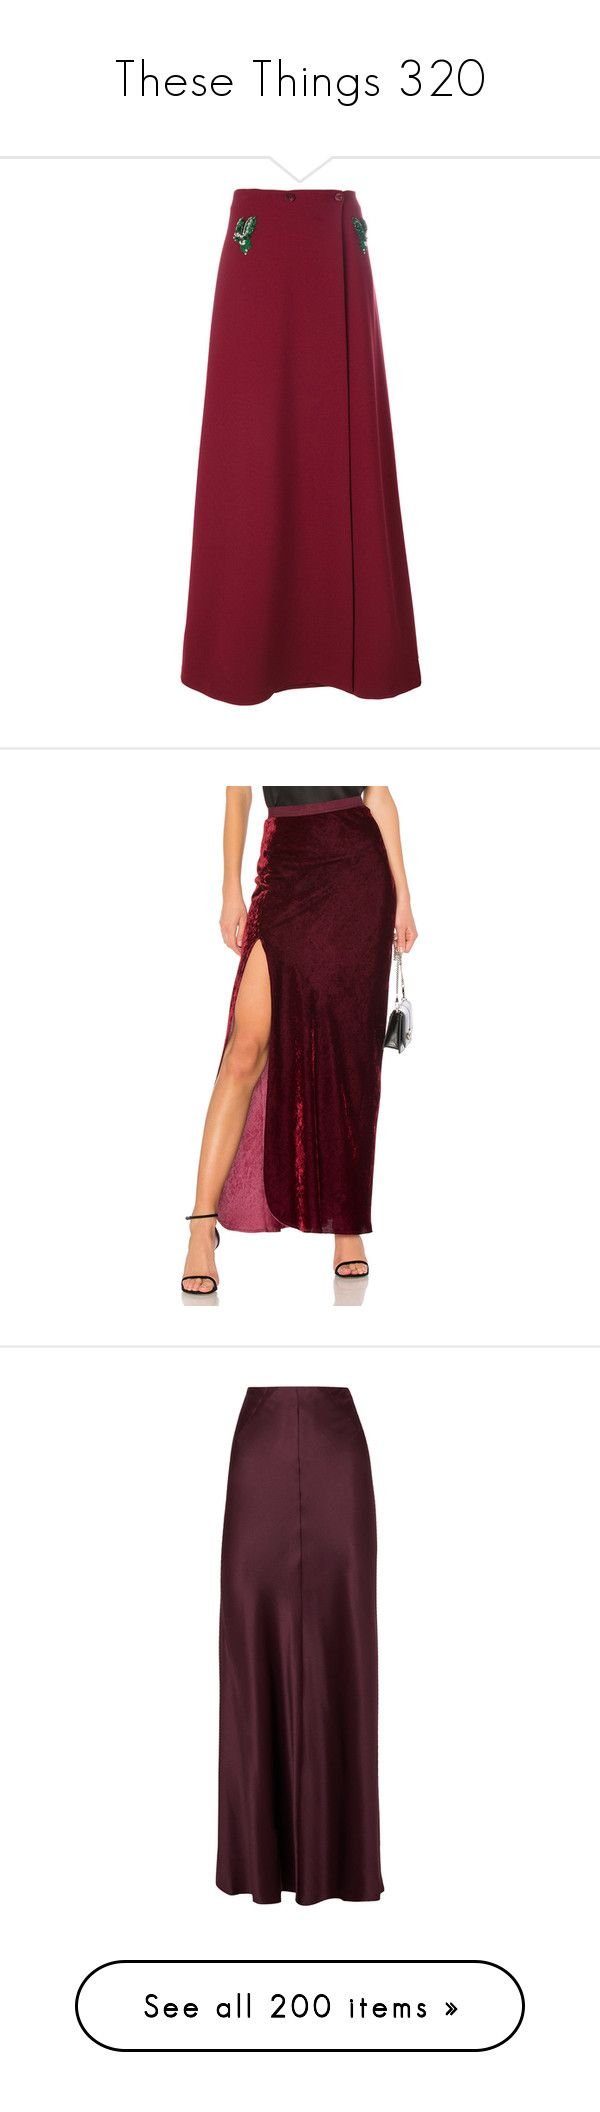 """These Things 320"" by katiemarilexa ❤ liked on Polyvore featuring skirts, red, long red skirt, maxi skirt, floor length skirt, red maxi skirt, ankle length skirt, nili lotan skirt, red skirt and burgundy"